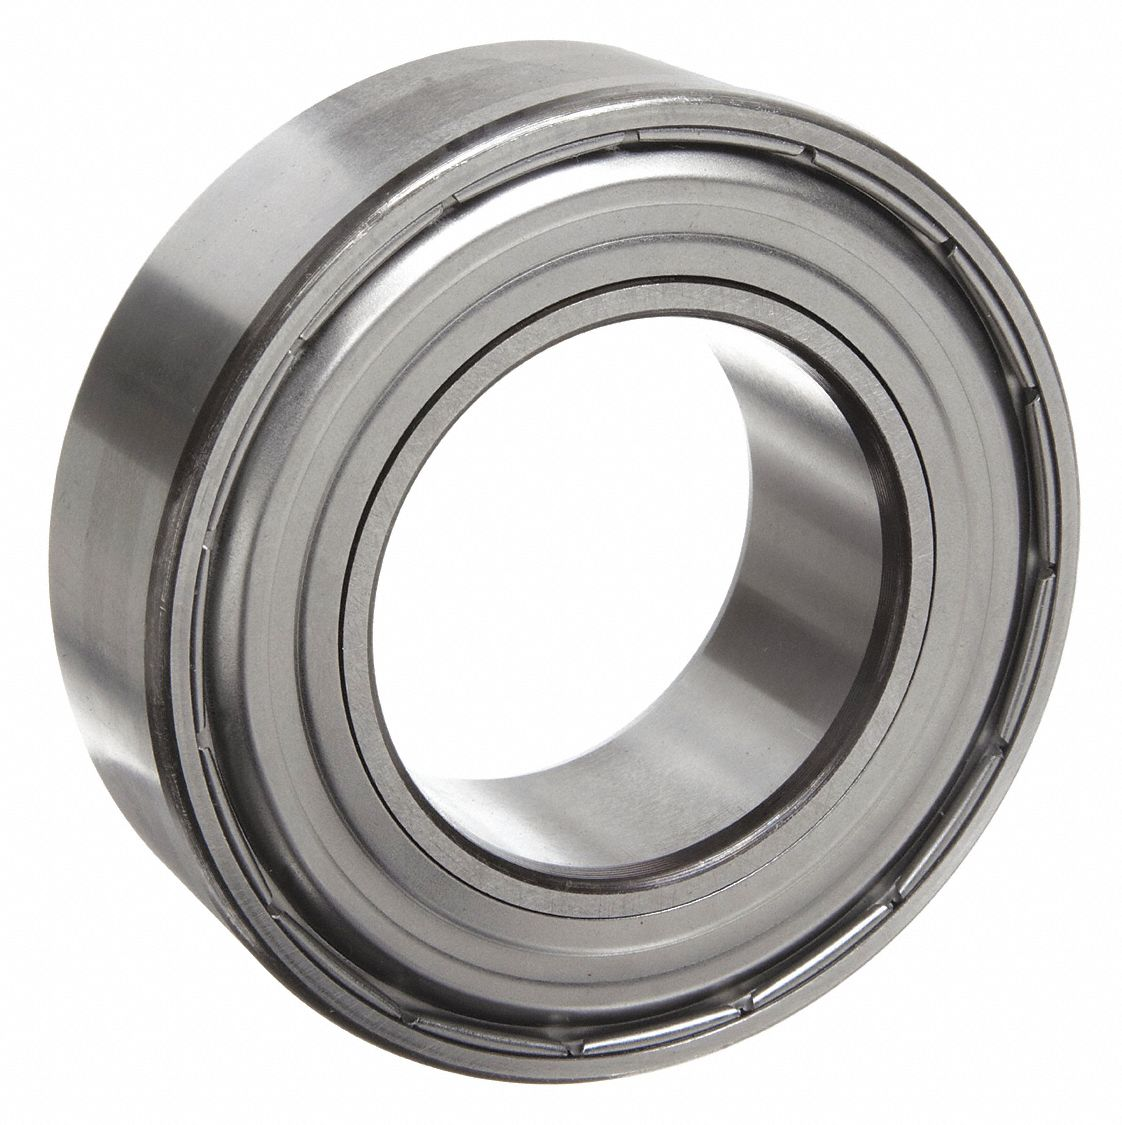 Radial Ball Bearing, Double Shielded, 6 mm Bore Dia., 19 mm Outside Dia.